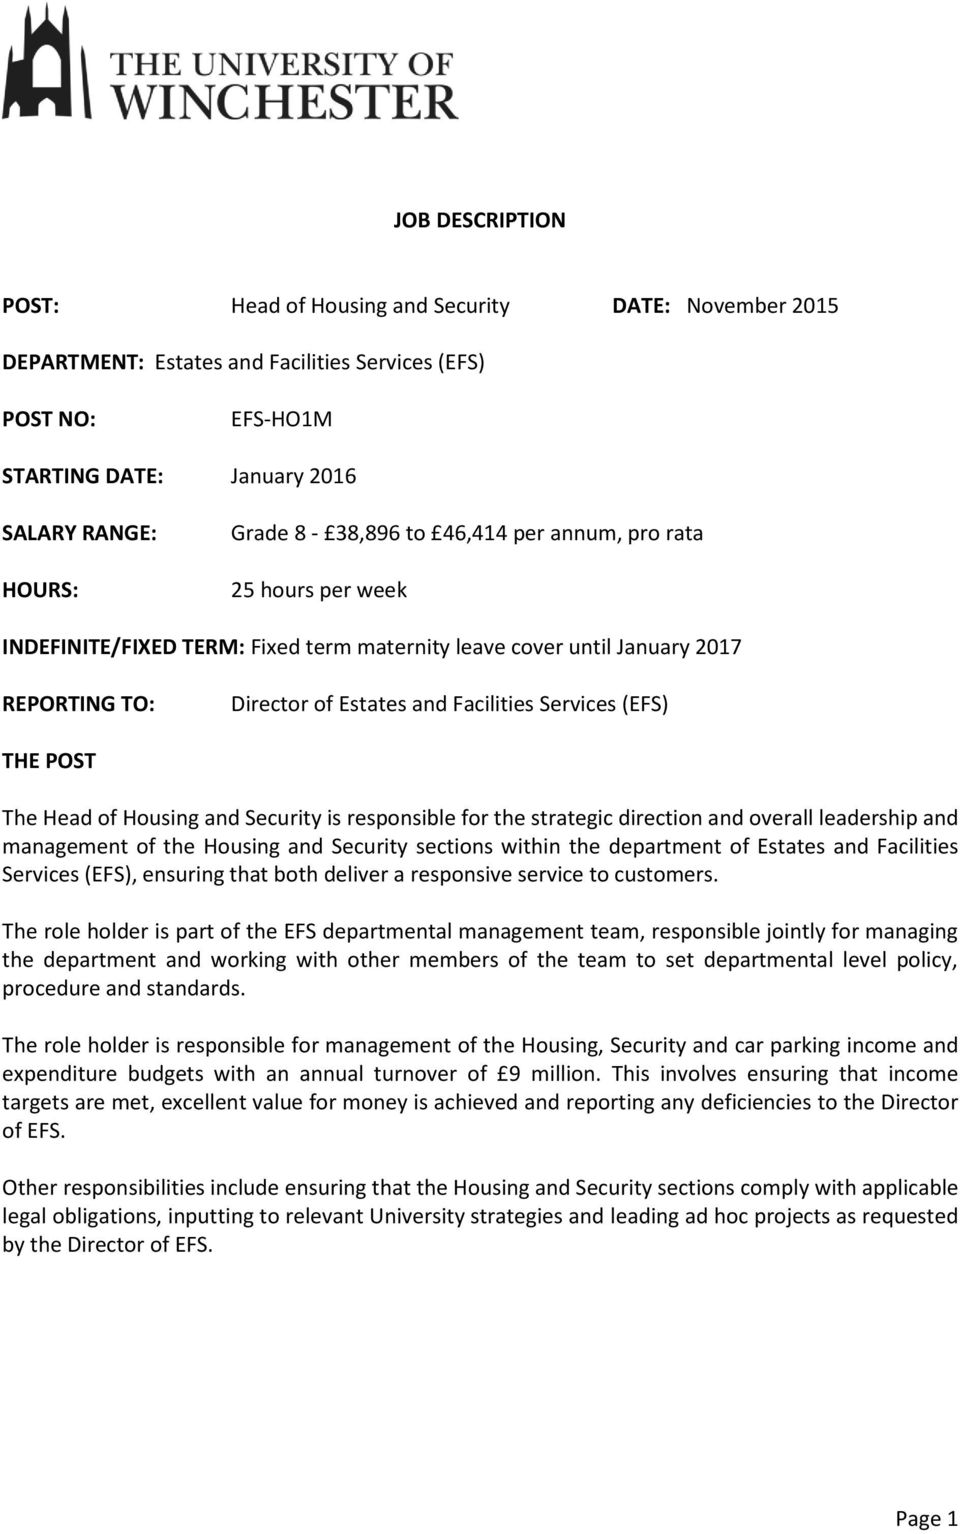 POST The Head of Housing and Security is responsible for the strategic direction and overall leadership and management of the Housing and Security sections within the department of Estates and